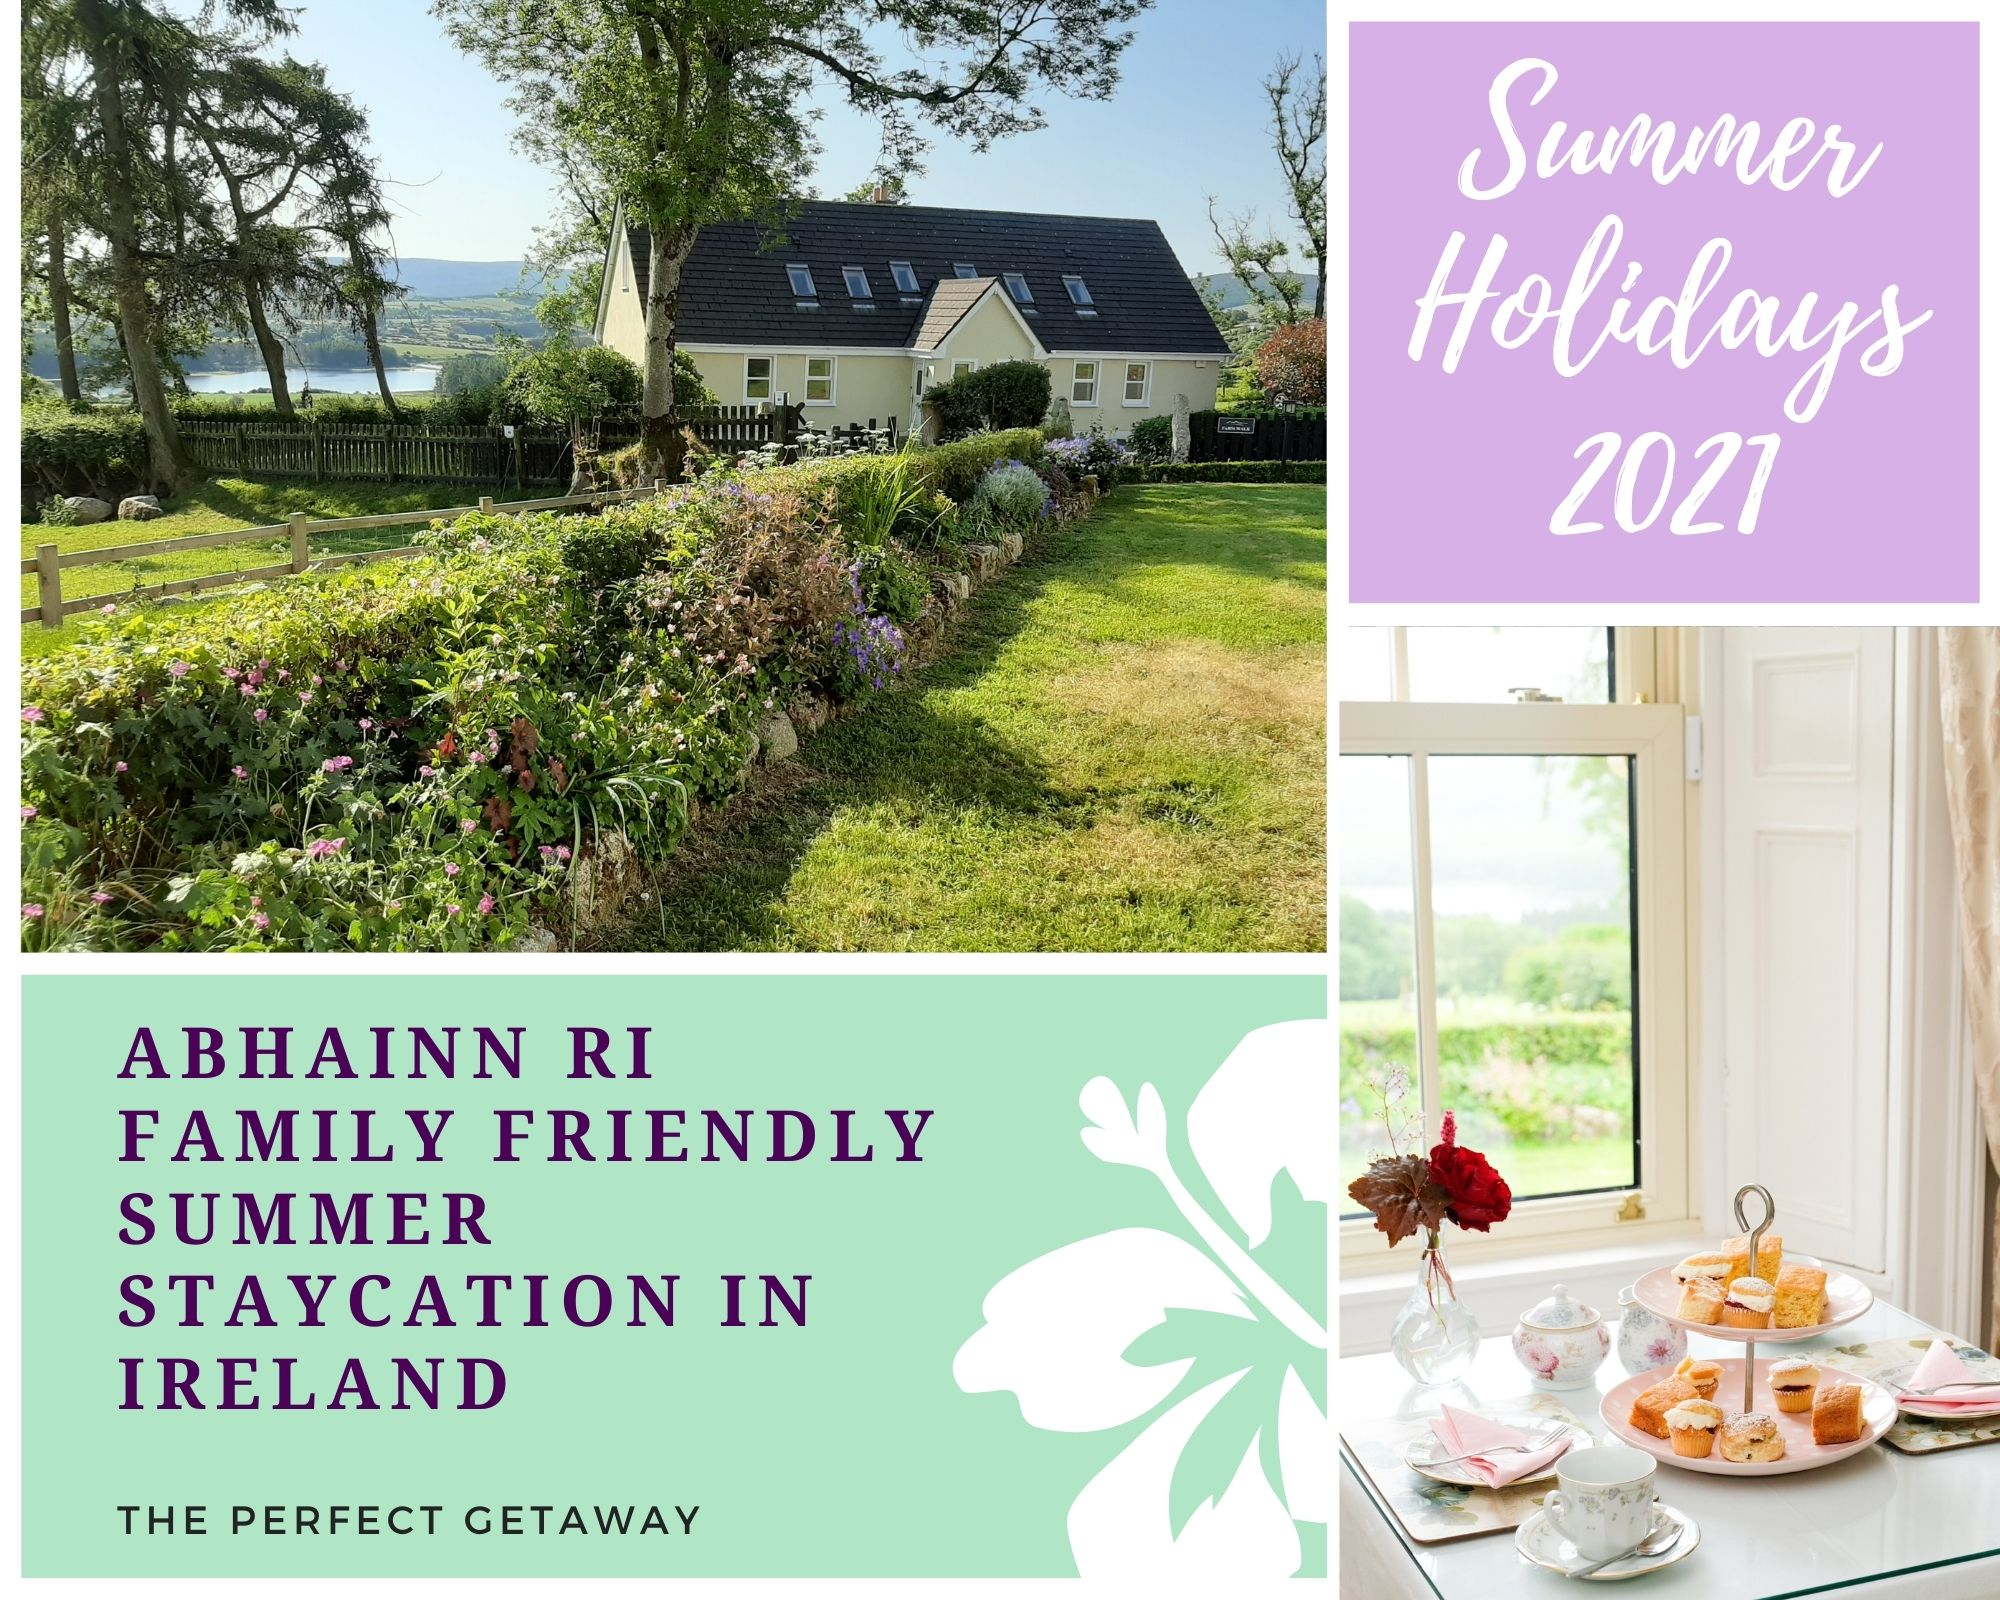 Selfcatering Family Staycation in Ireland